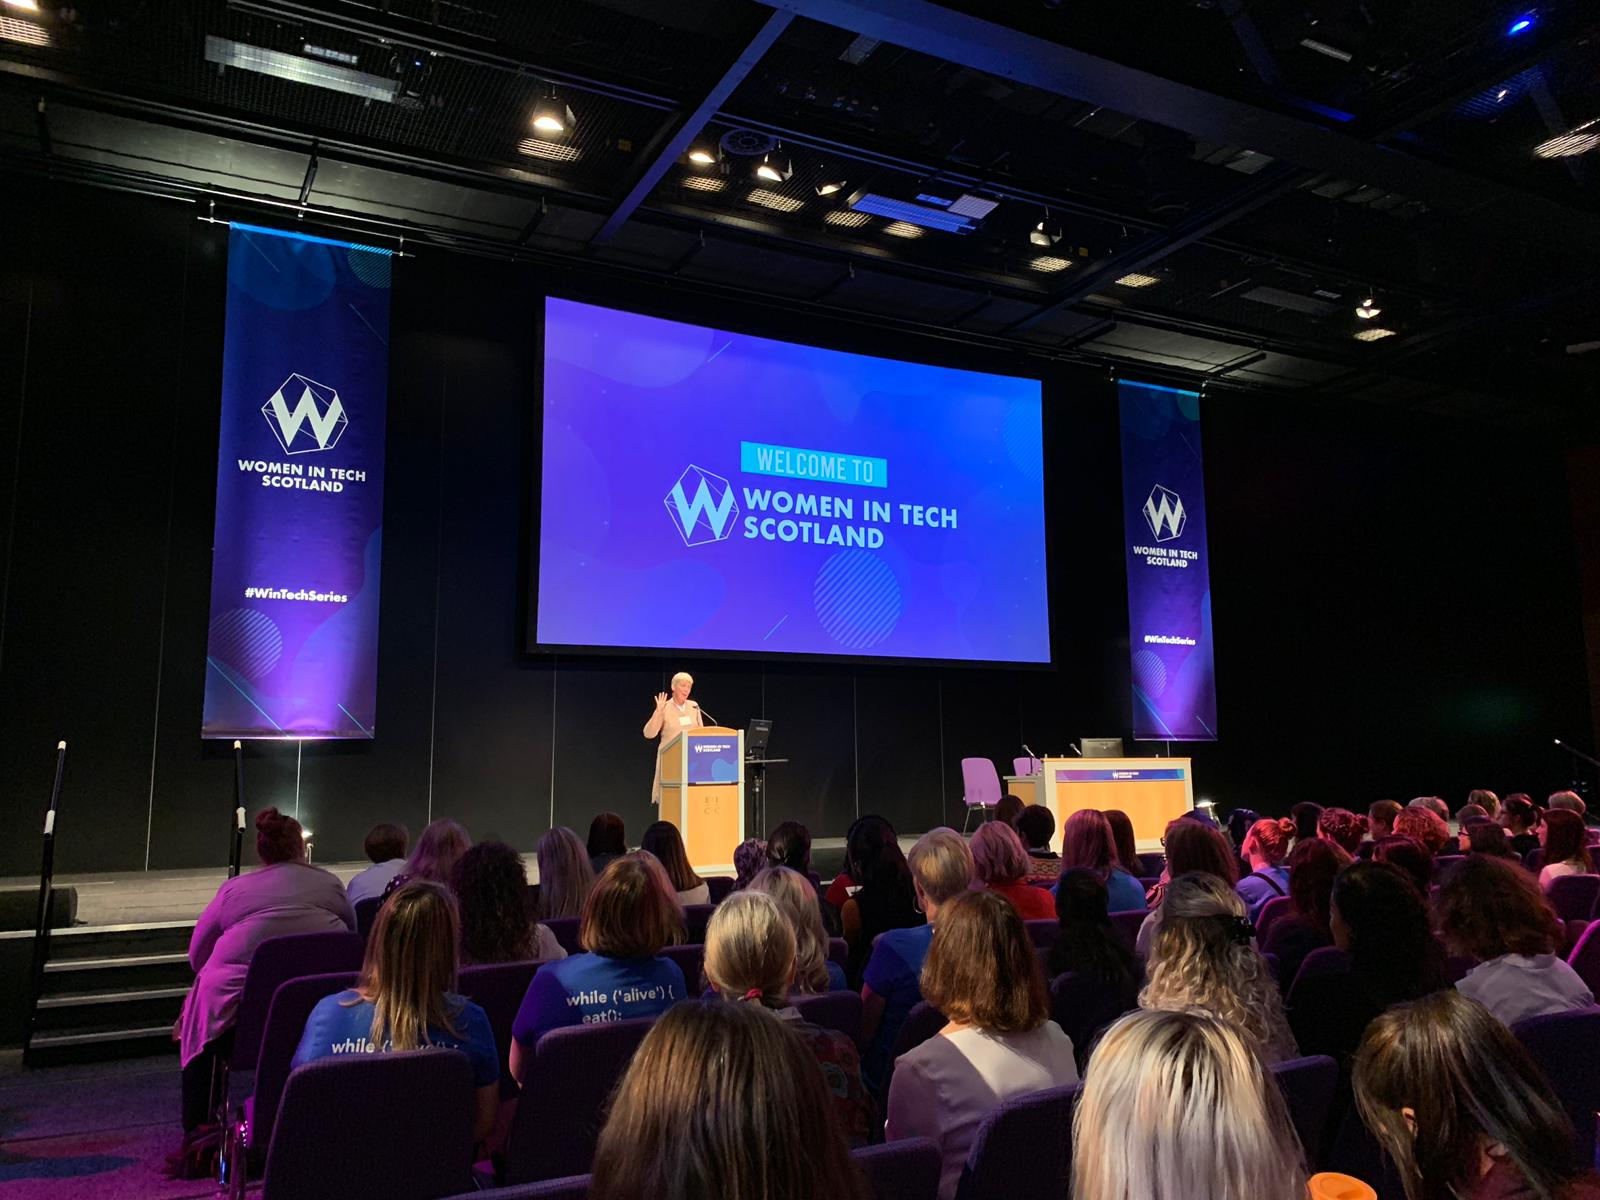 women-tech-scotland-event-conference